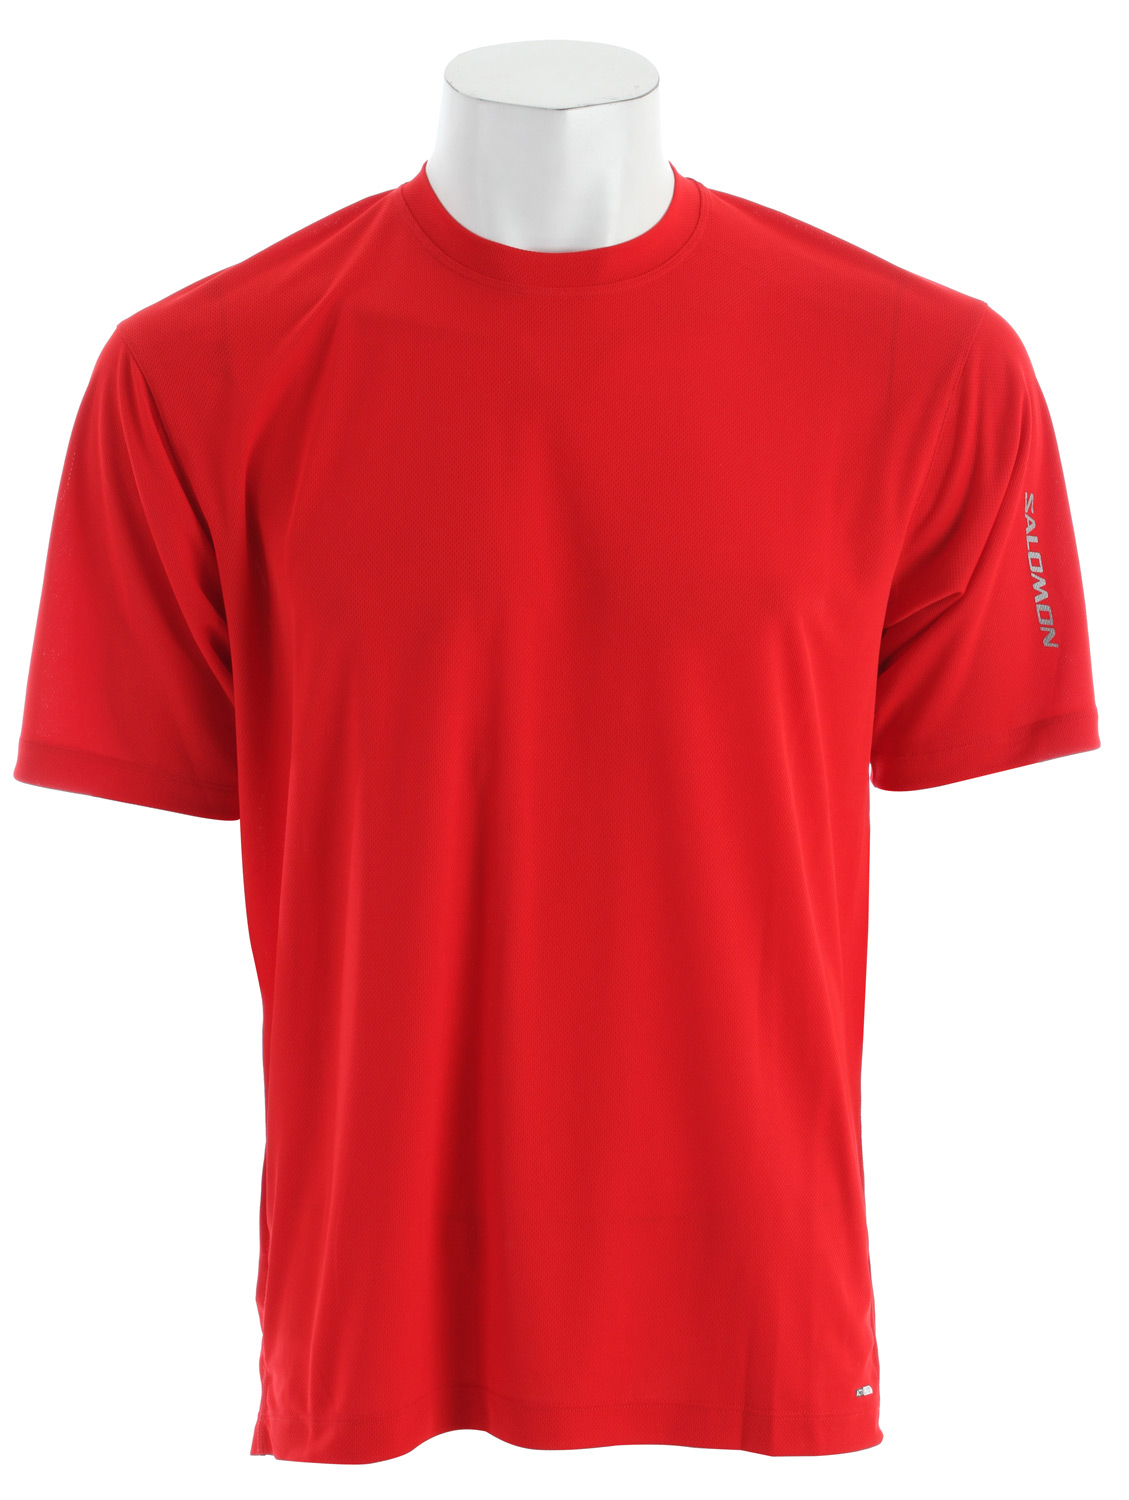 Fitness Very light, very breathable running T-Shirt with reflective detailing and a relaxed fit.Key Features of the Salomon X T-Shirt: Actilite poly mock eylet Reflective branding Flatlock seams Body: PES 100% Relax fit 100g - $20.95